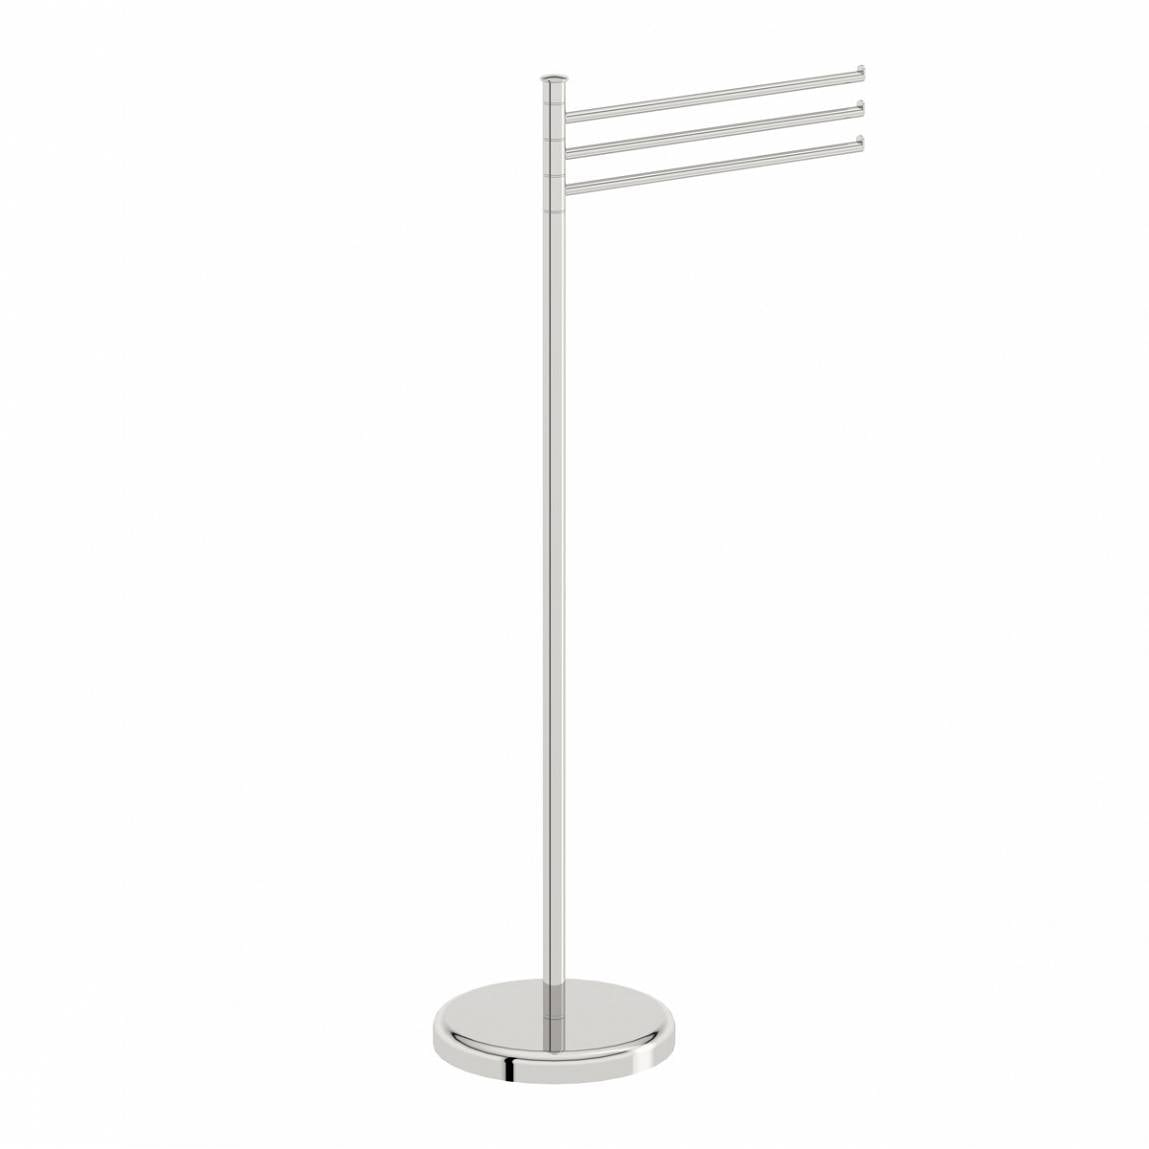 Orchard Options contemporary freestanding towel rail